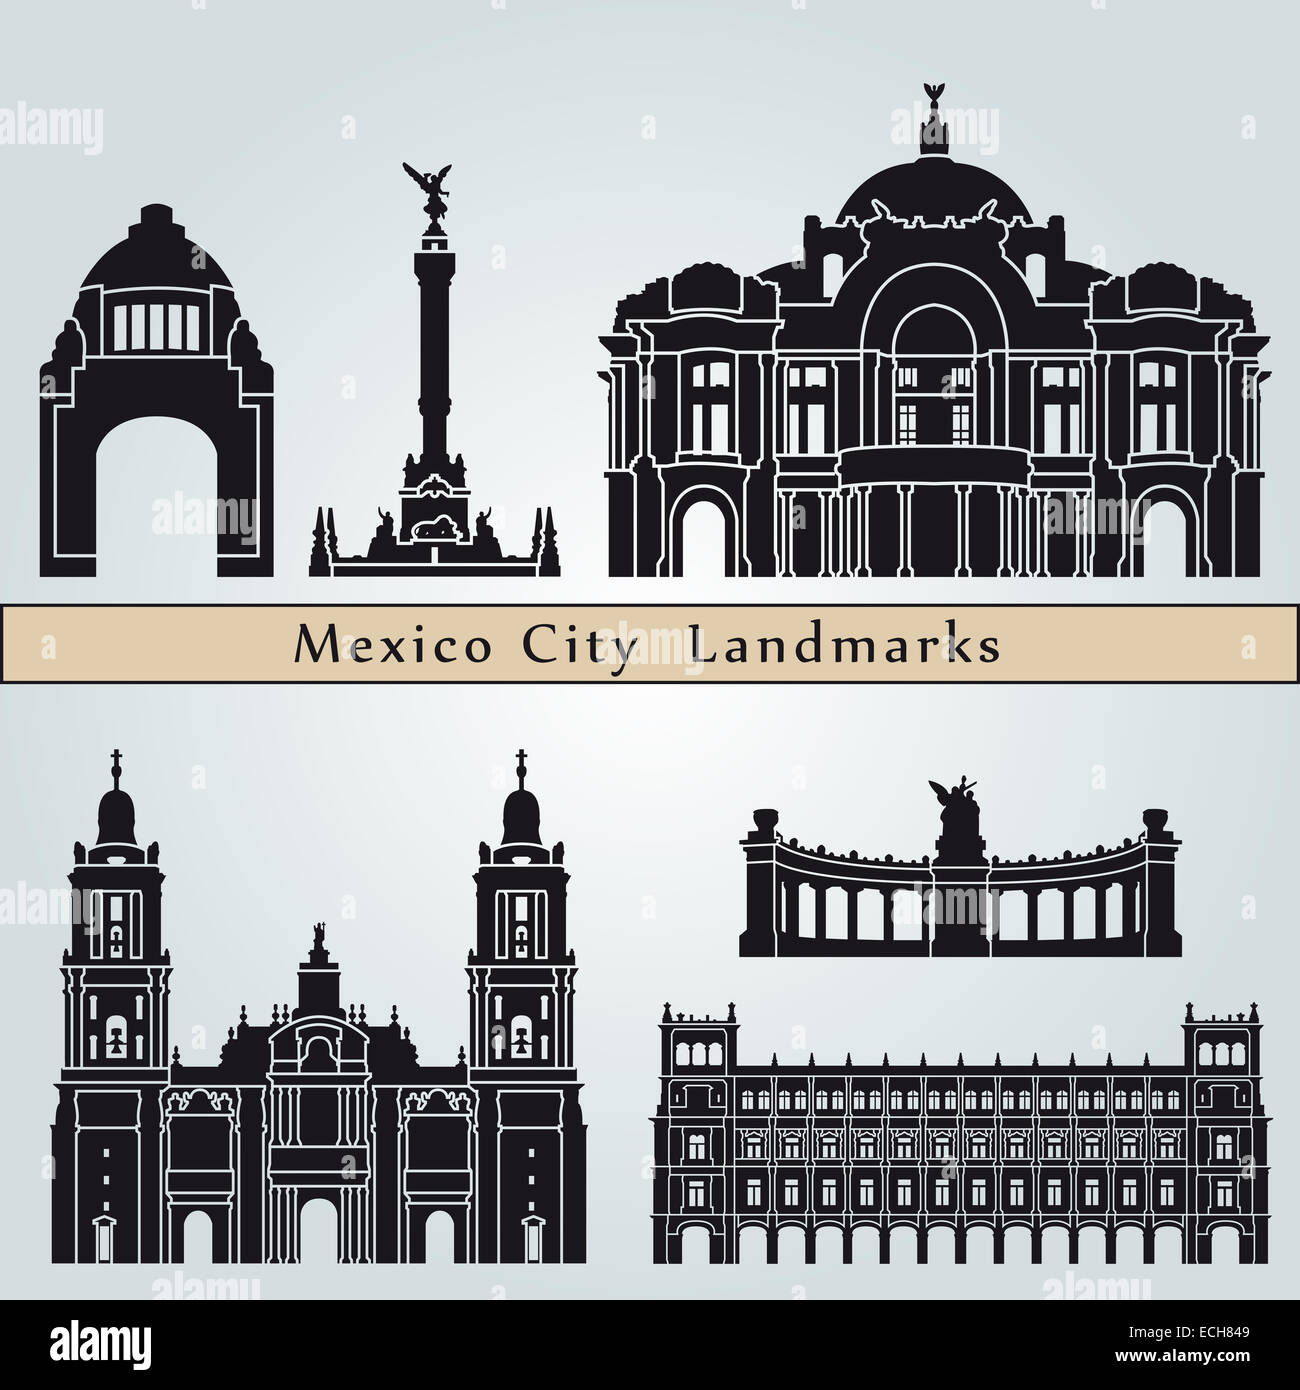 Mexico city landmarks and monuments stock photo royalty free mexico city landmarks and monuments sciox Gallery